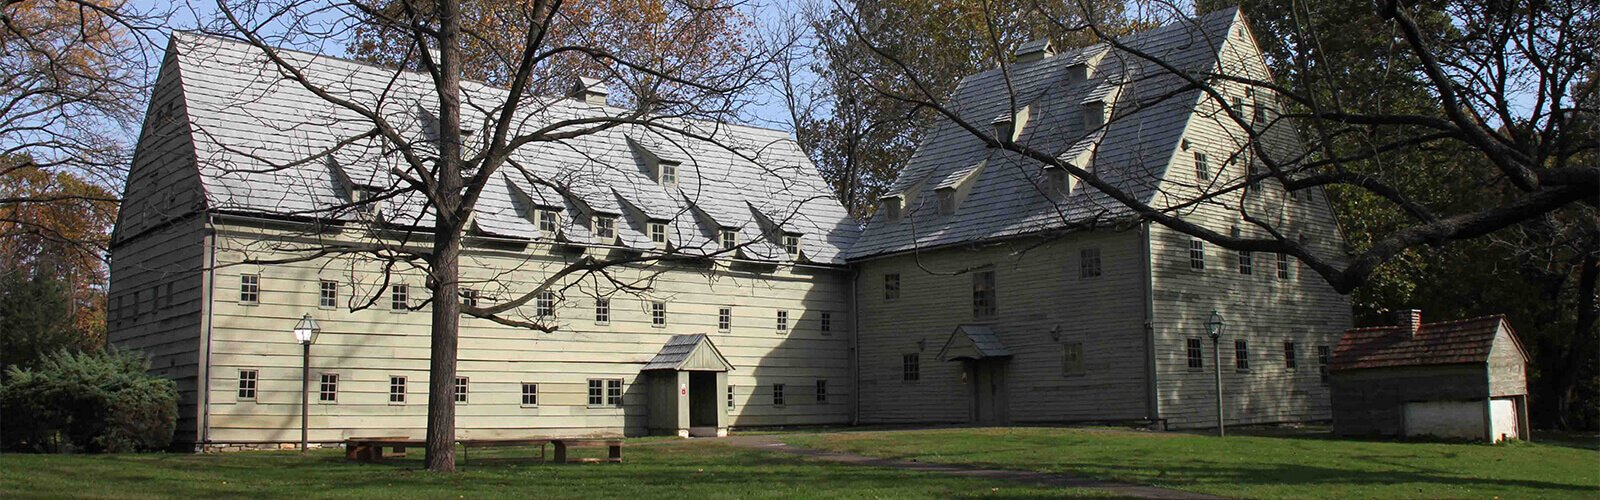 The Brothers' and Sisters' communal quarters at Ephrata.